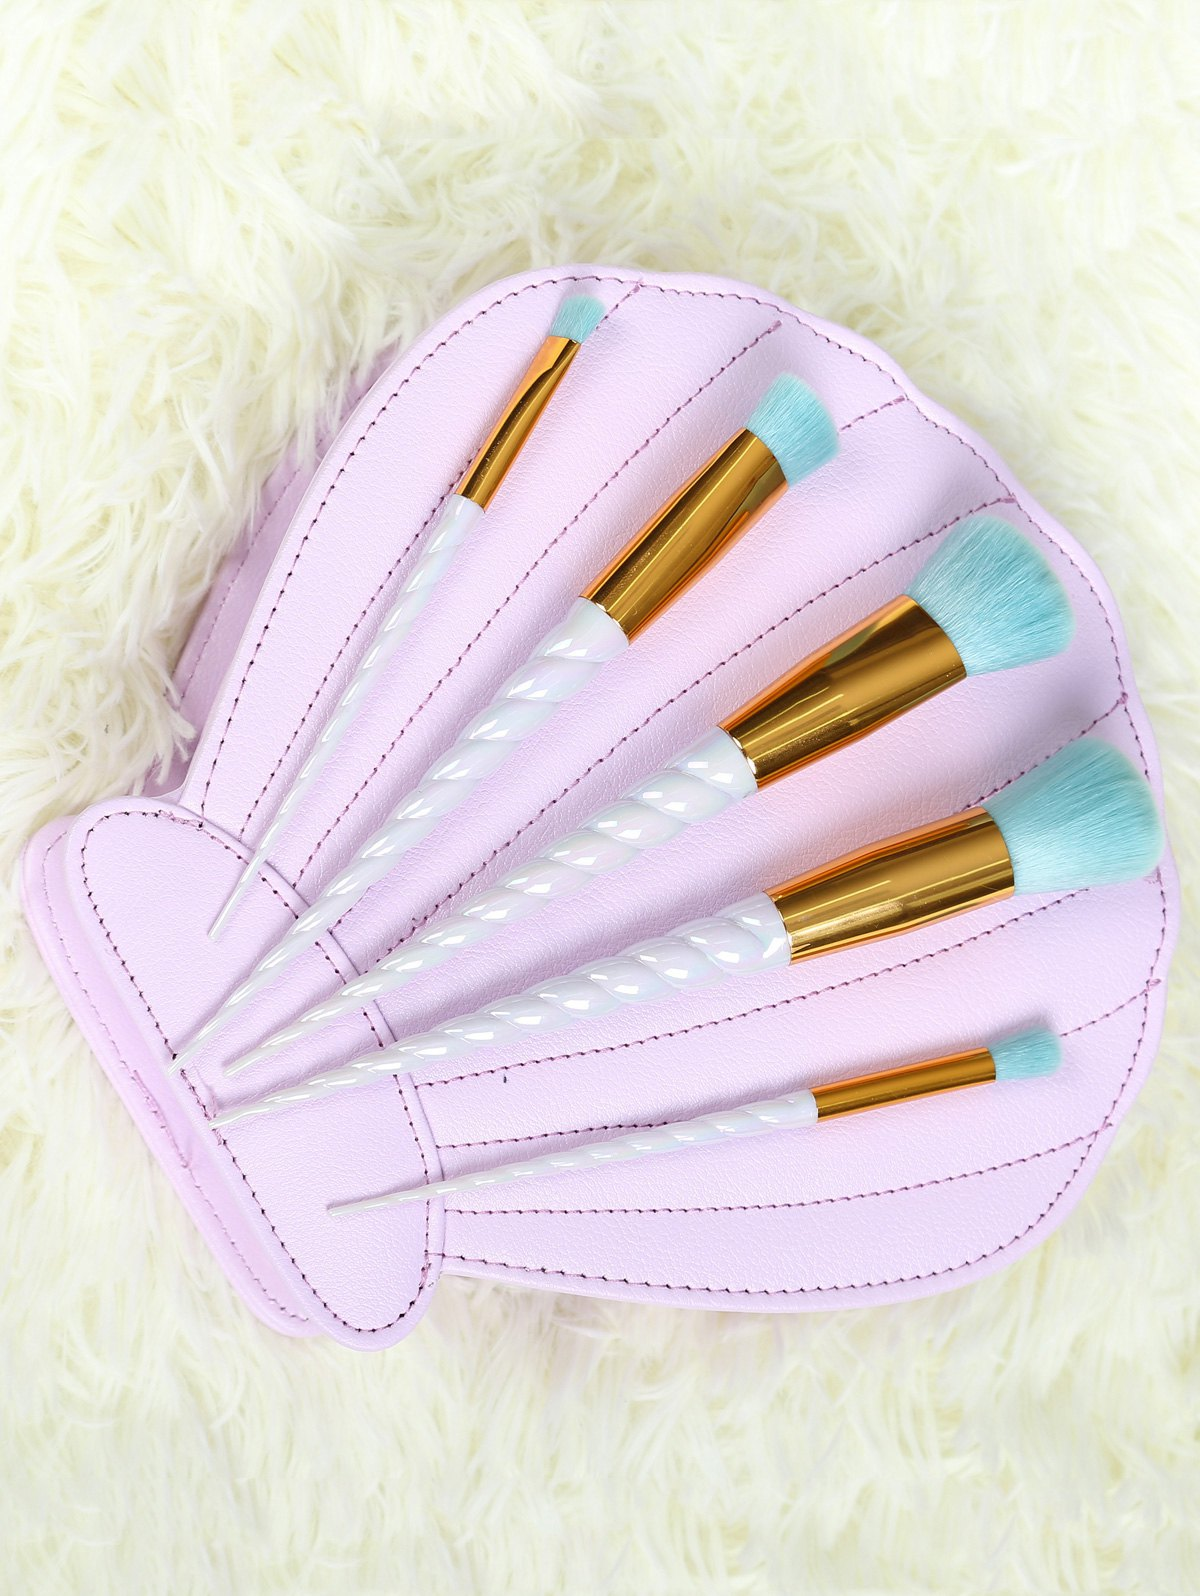 5 Pcs Spiral Unicorn Makeup Brushes Set